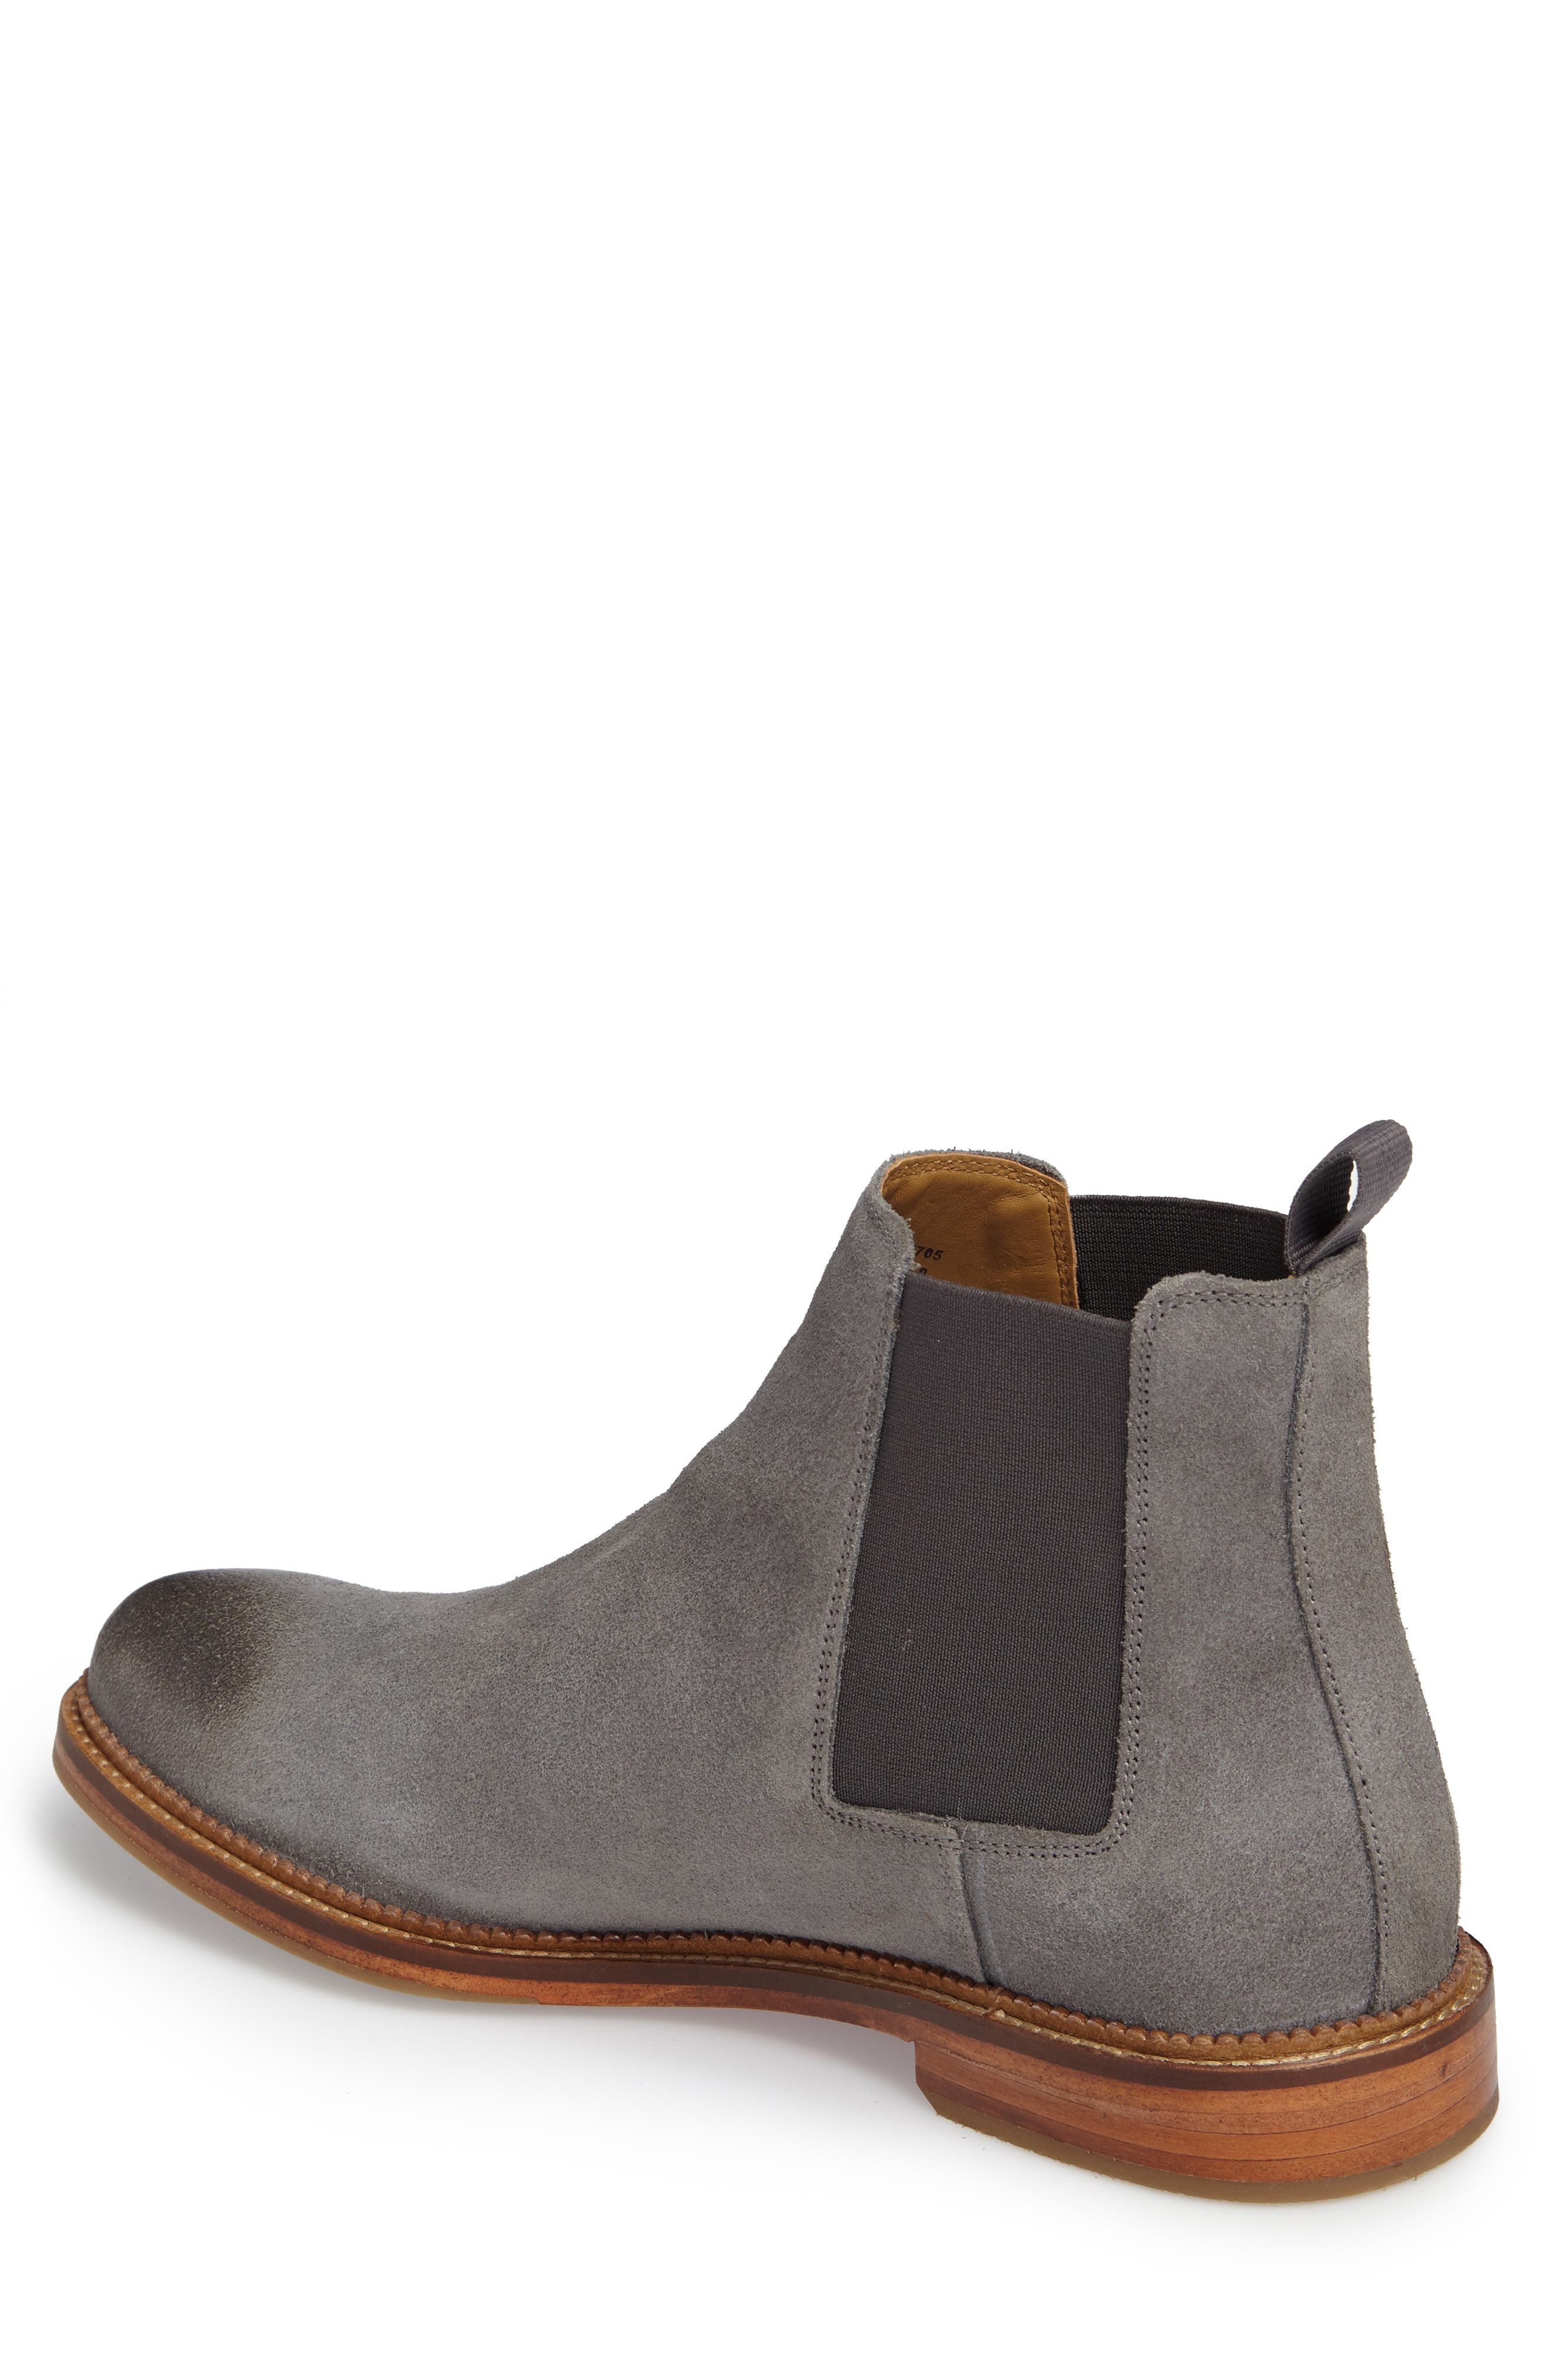 Jamie Chelsea Boot,                             Alternate thumbnail 2, color,                             Magnet Suede